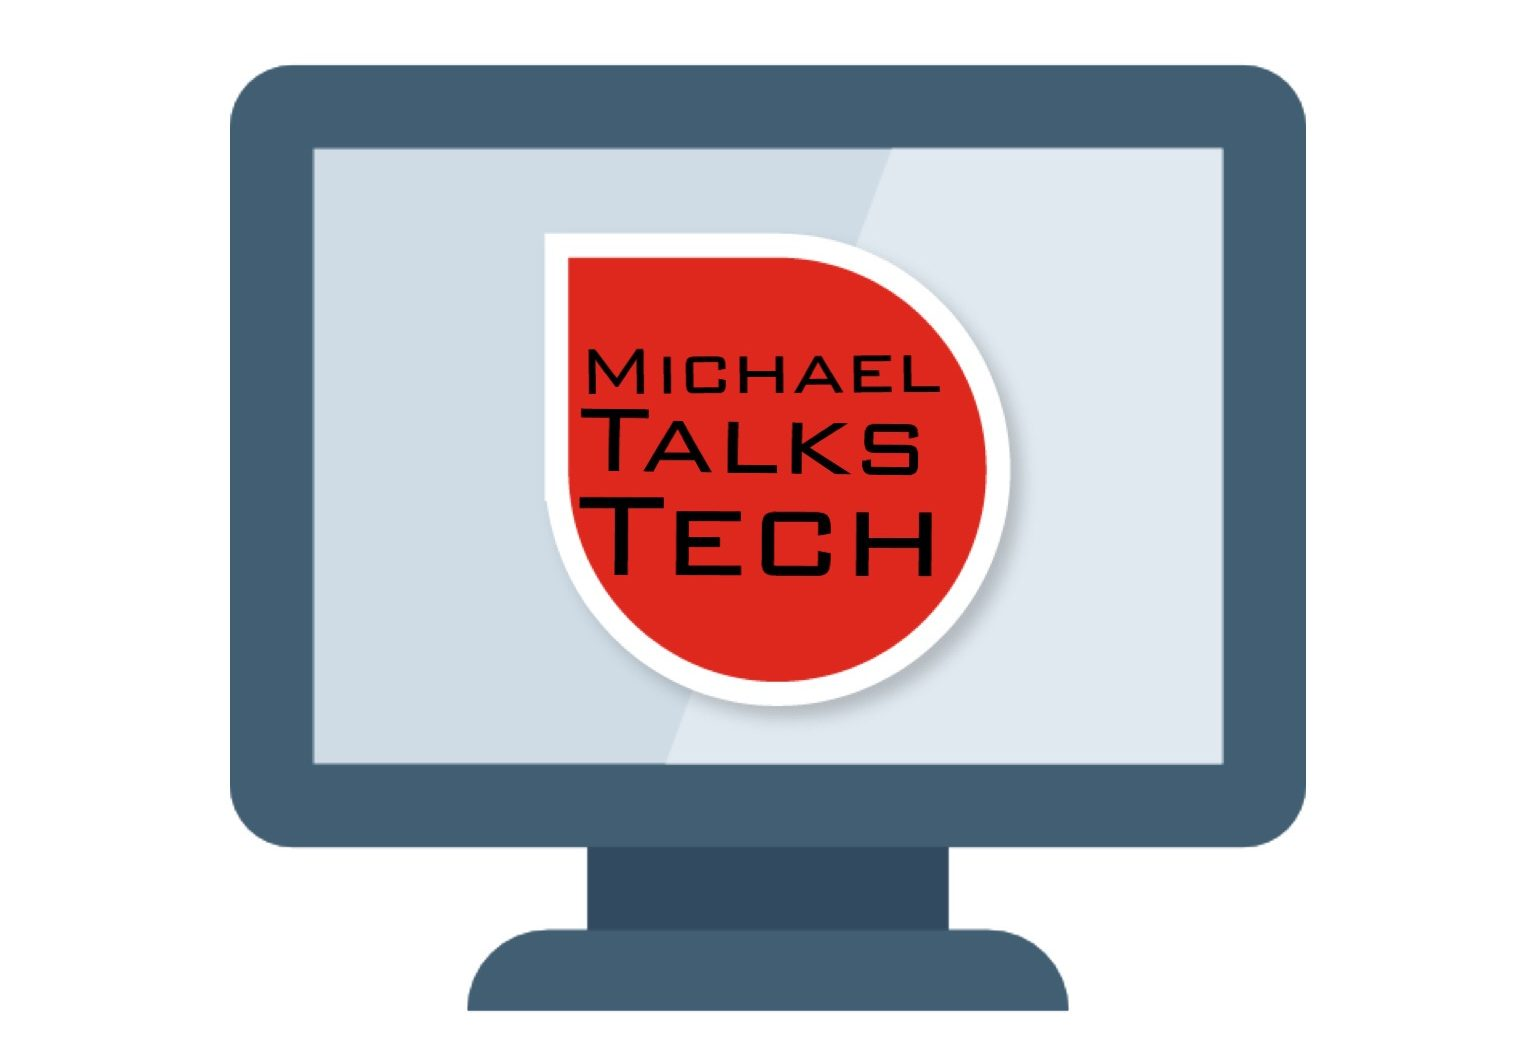 Michael Talks Tech